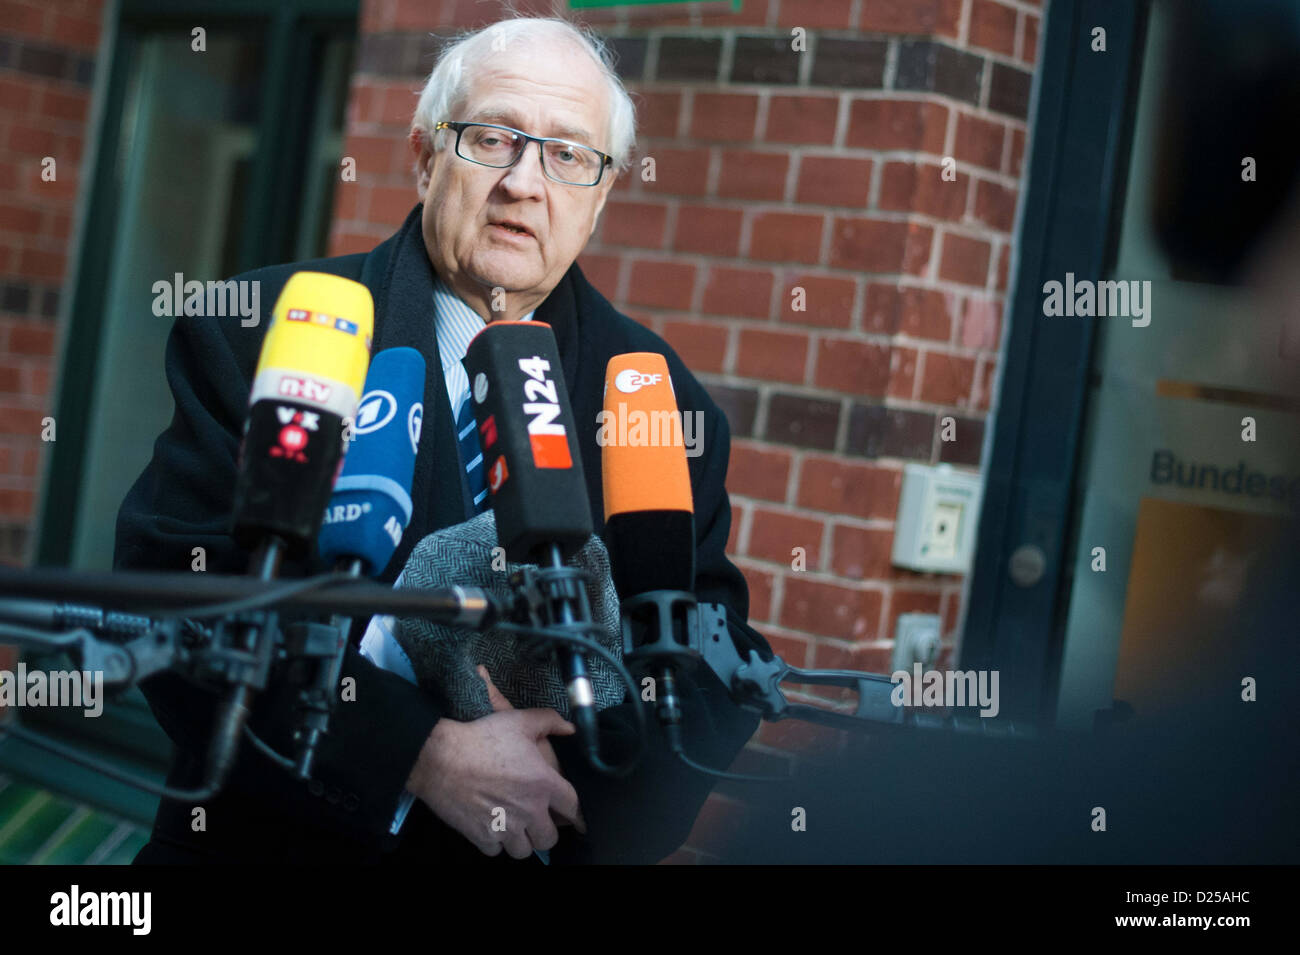 German leader of the FDP faction, Rainer Brüderle (FDP) joins the FDP-Presidium meeting in Berlin, 14 January - Stock Image